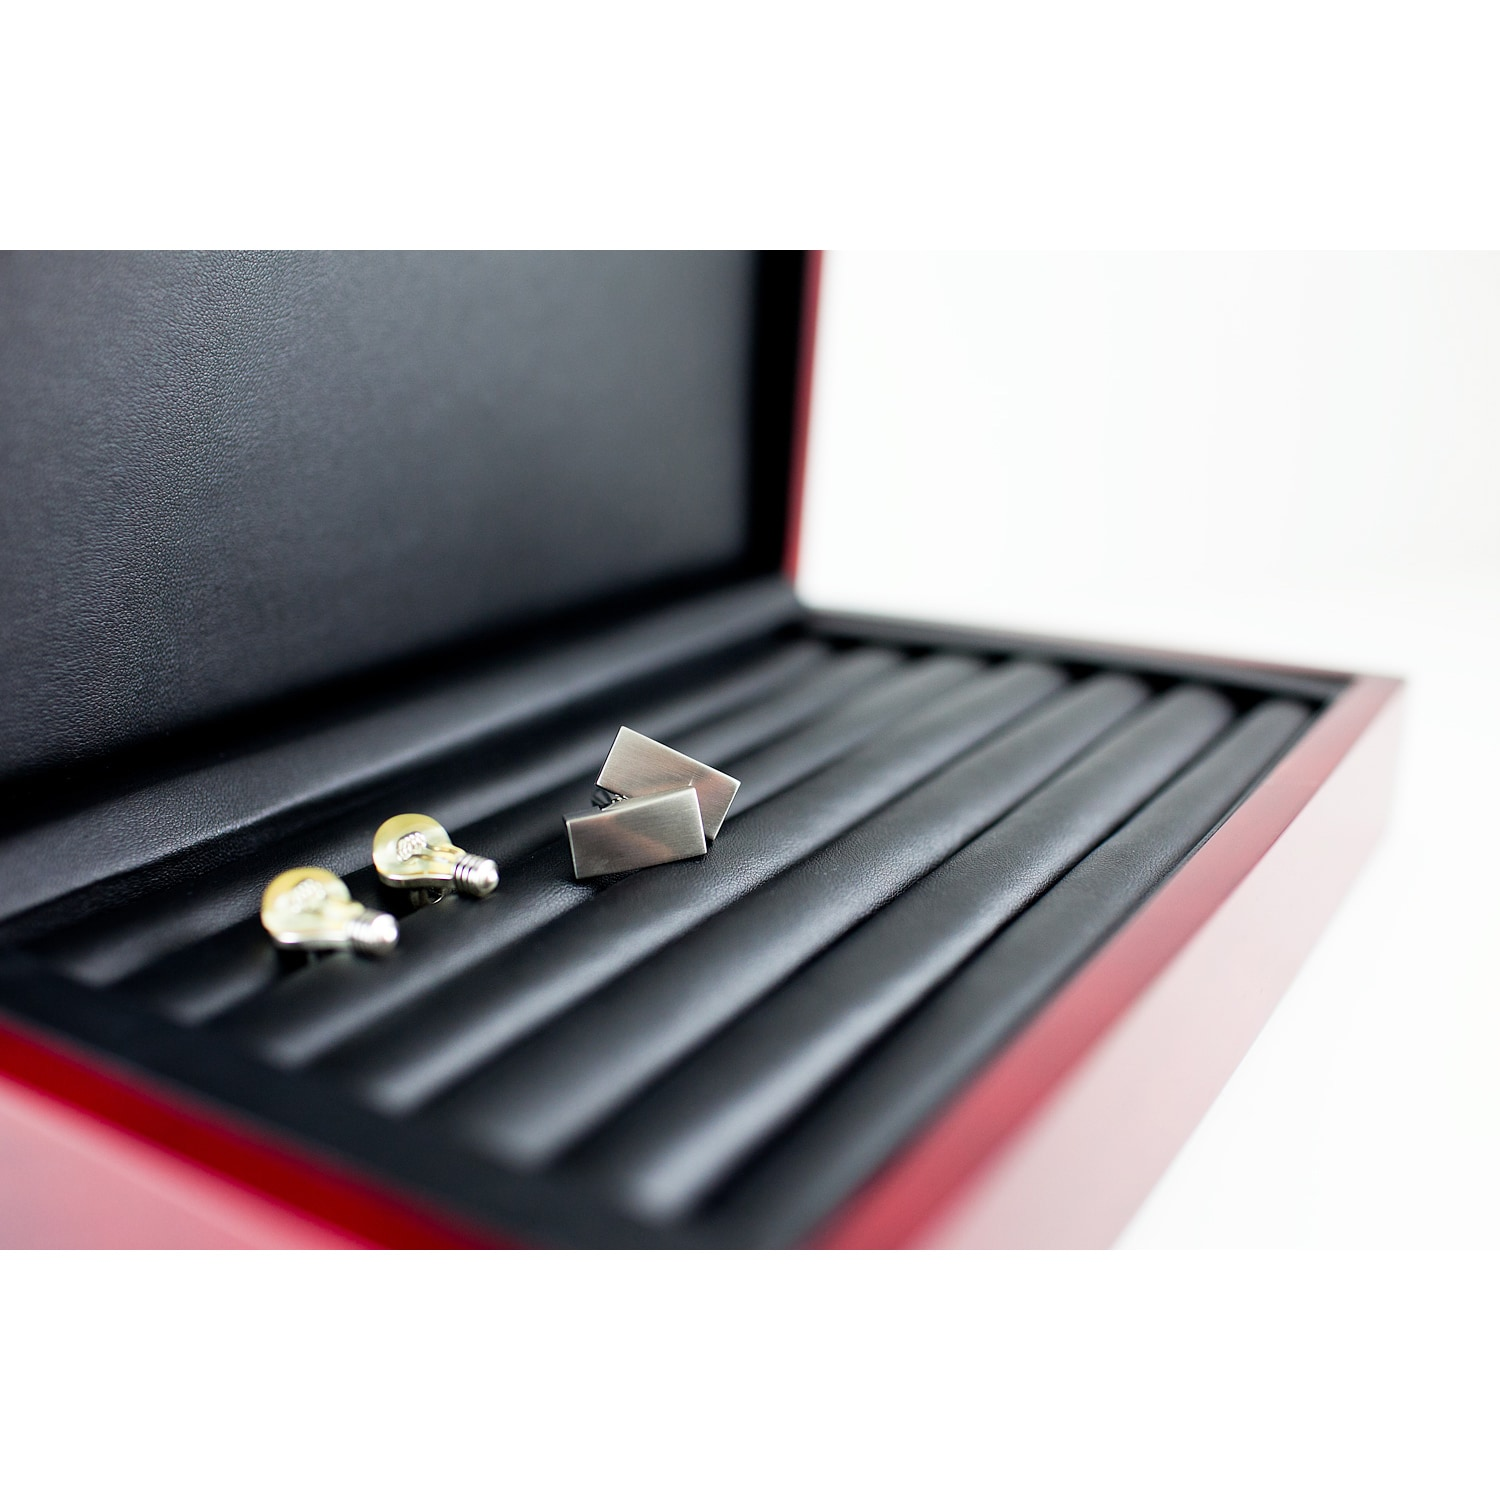 3668c419b Shop Caddy Bay Collection Rosewood Jewelry Ring Cuff Link Display Storage  Box - Free Shipping On Orders Over $45 - Overstock - 7292273